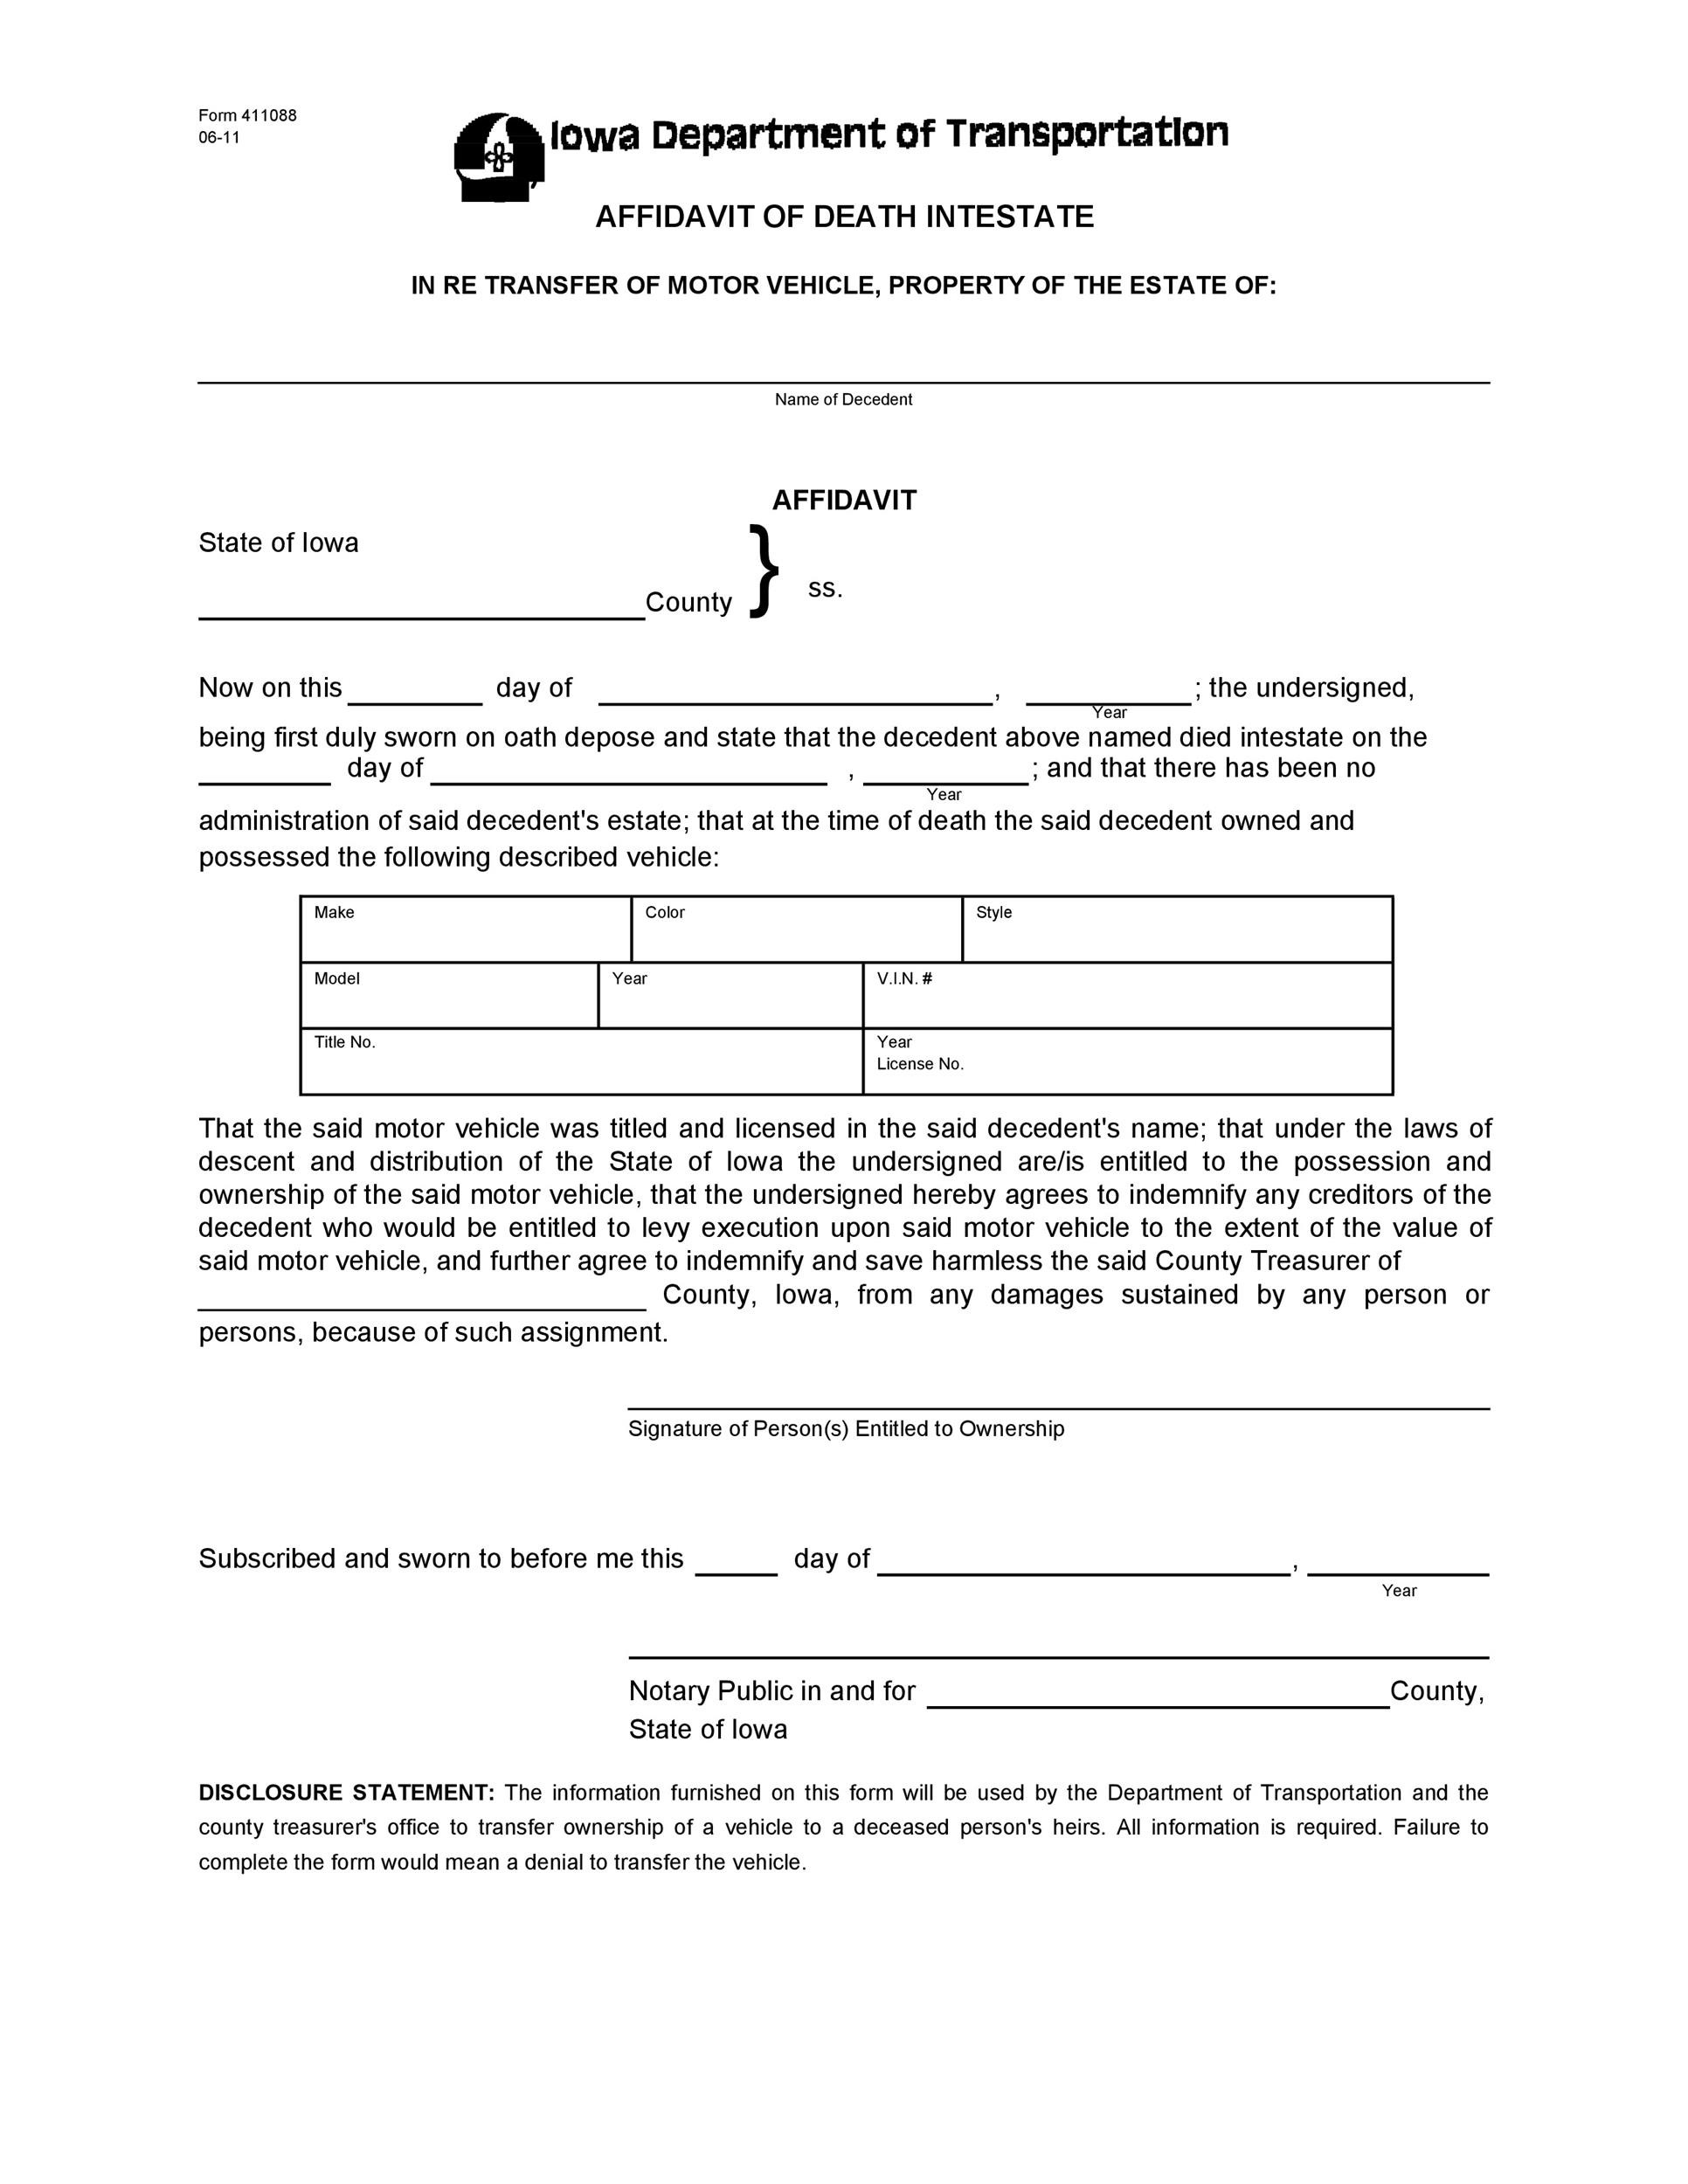 Free affidavit of death 01